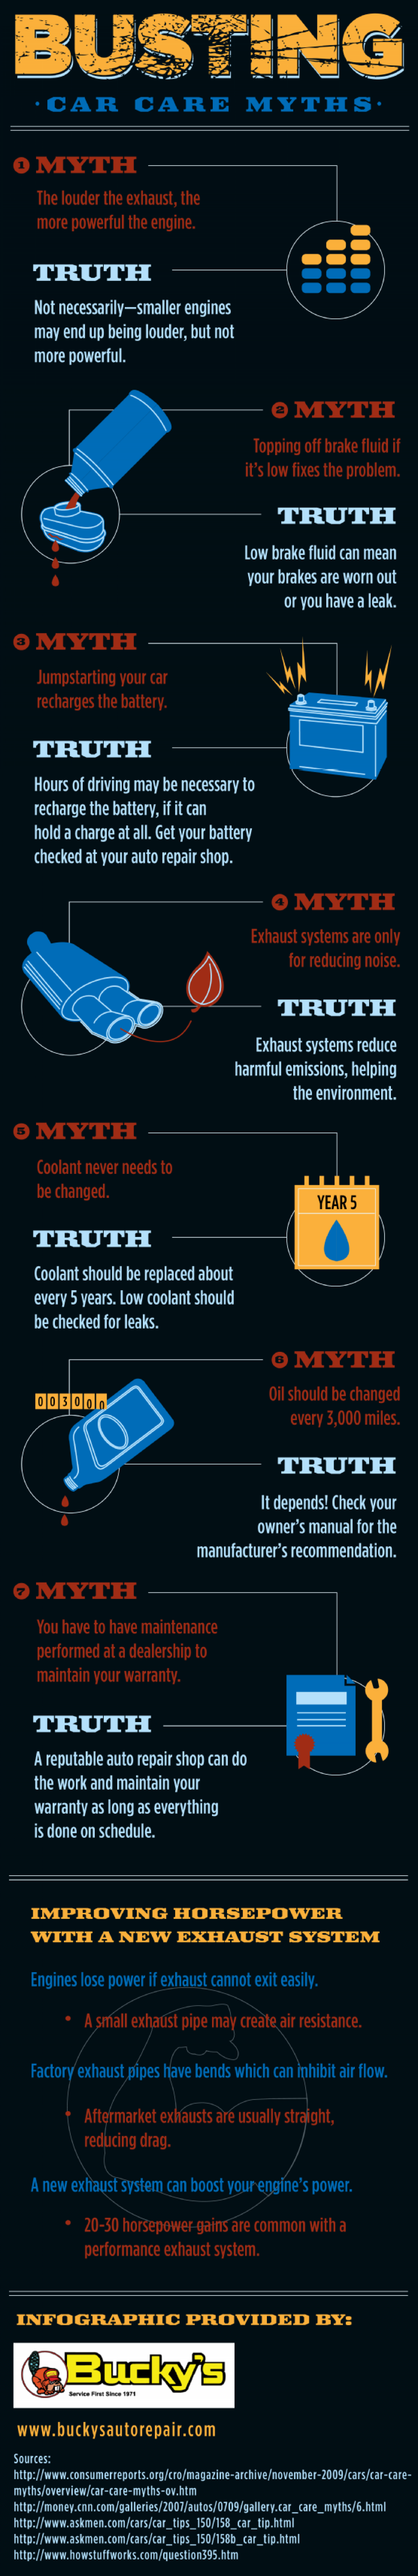 Busting Car Care Myths Infographic